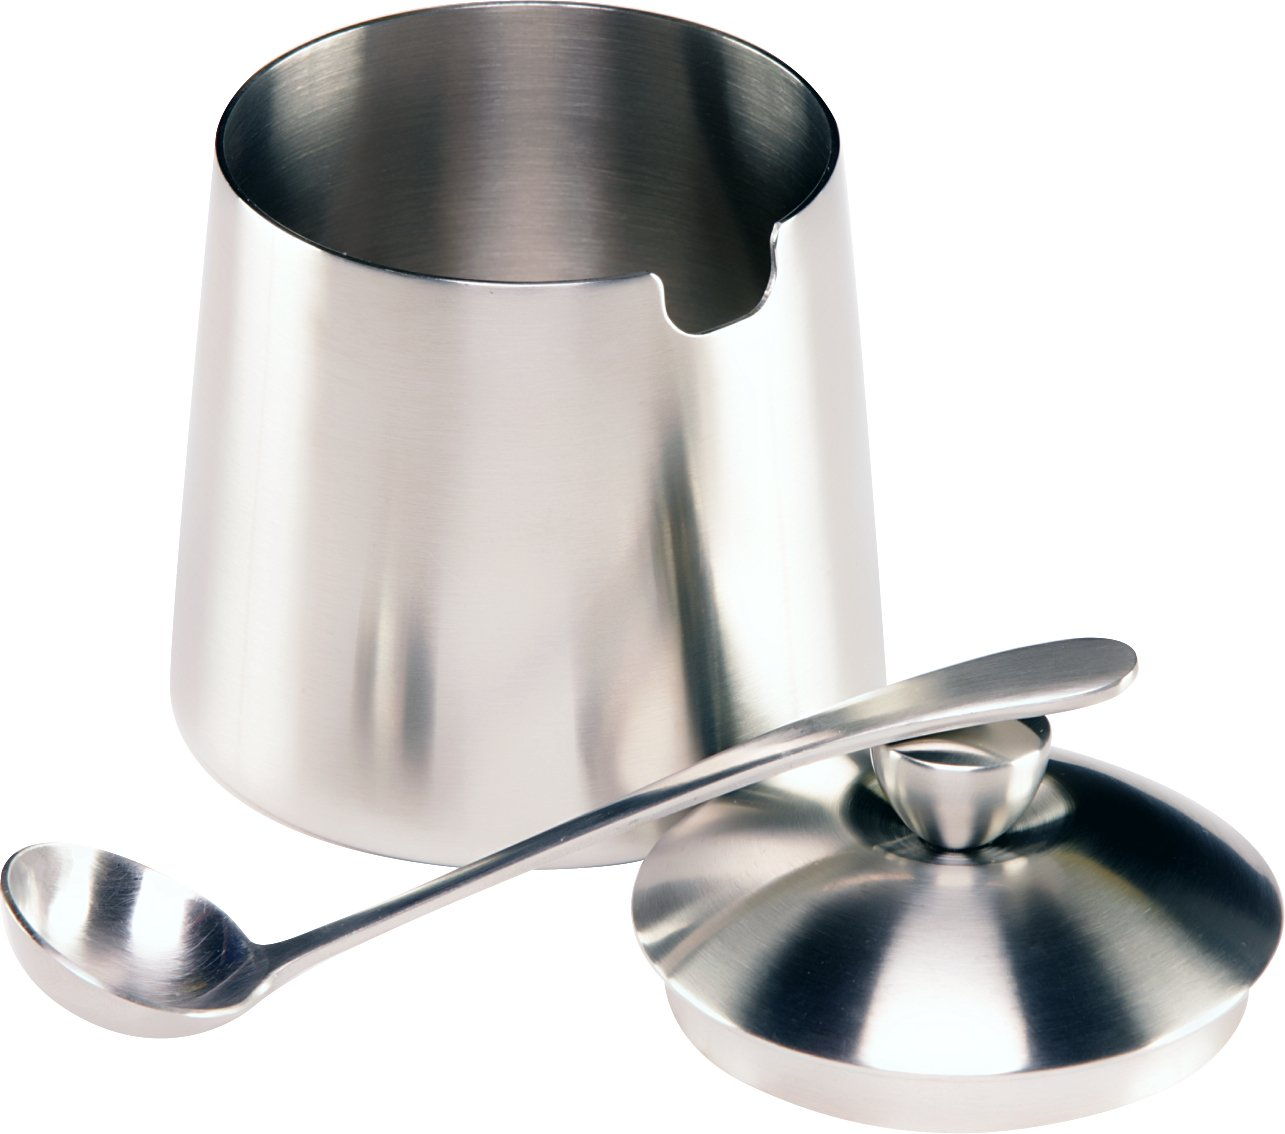 amazoncom  frieling brushed stainless steel creamer  sugar bowl  - amazoncom  frieling brushed stainless steel creamer  sugar bowl withspoon set cream and sugar sets cream  sugar sets